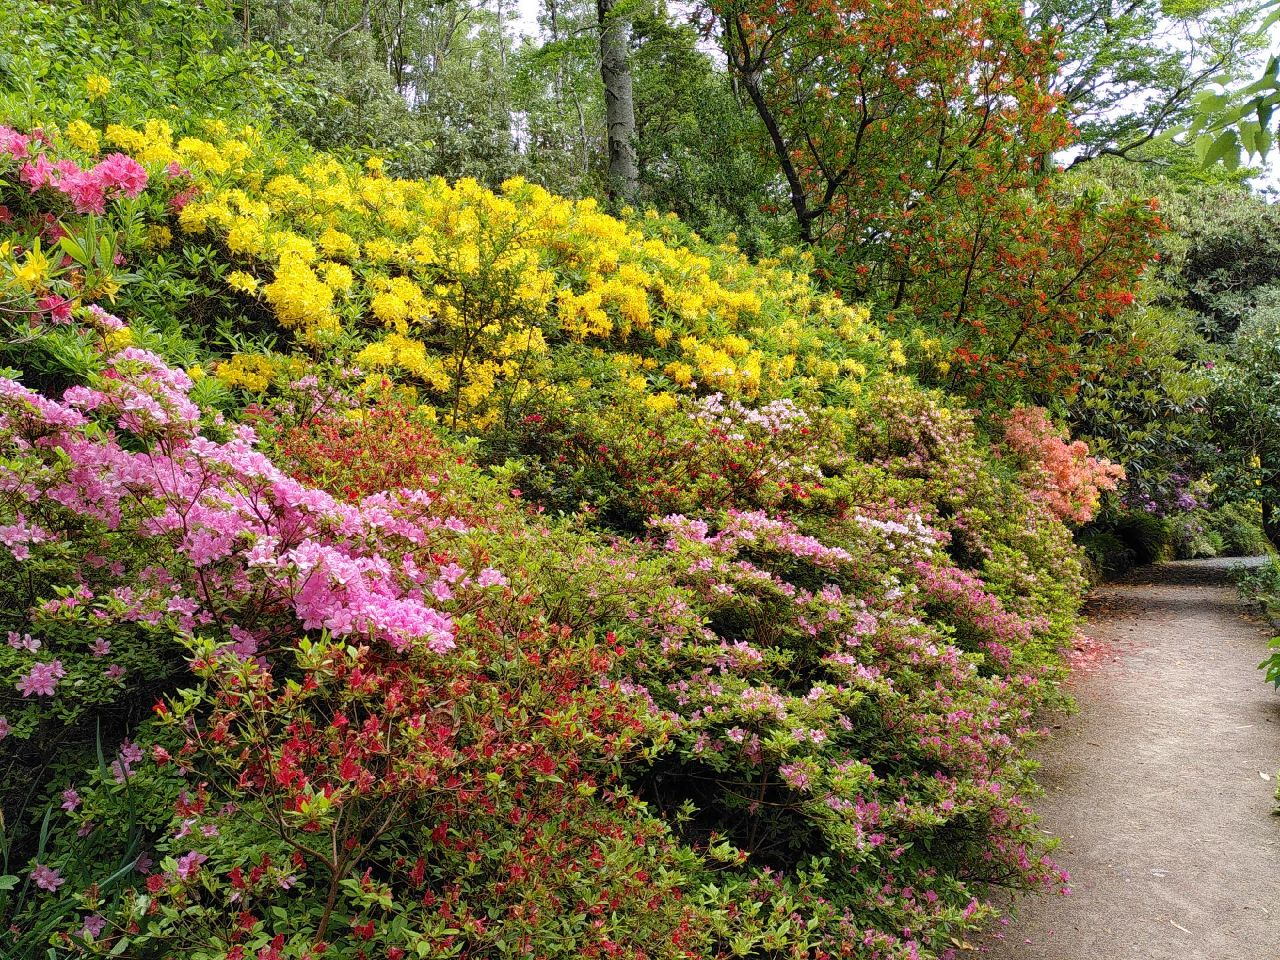 A large collection of bushes on the left, cloud-like and festooned with flowers of all varieties from pink to red to yellow to orange. The smell of weed was back from the yellow flowers. Path walks along the right of the image turning off-screen.